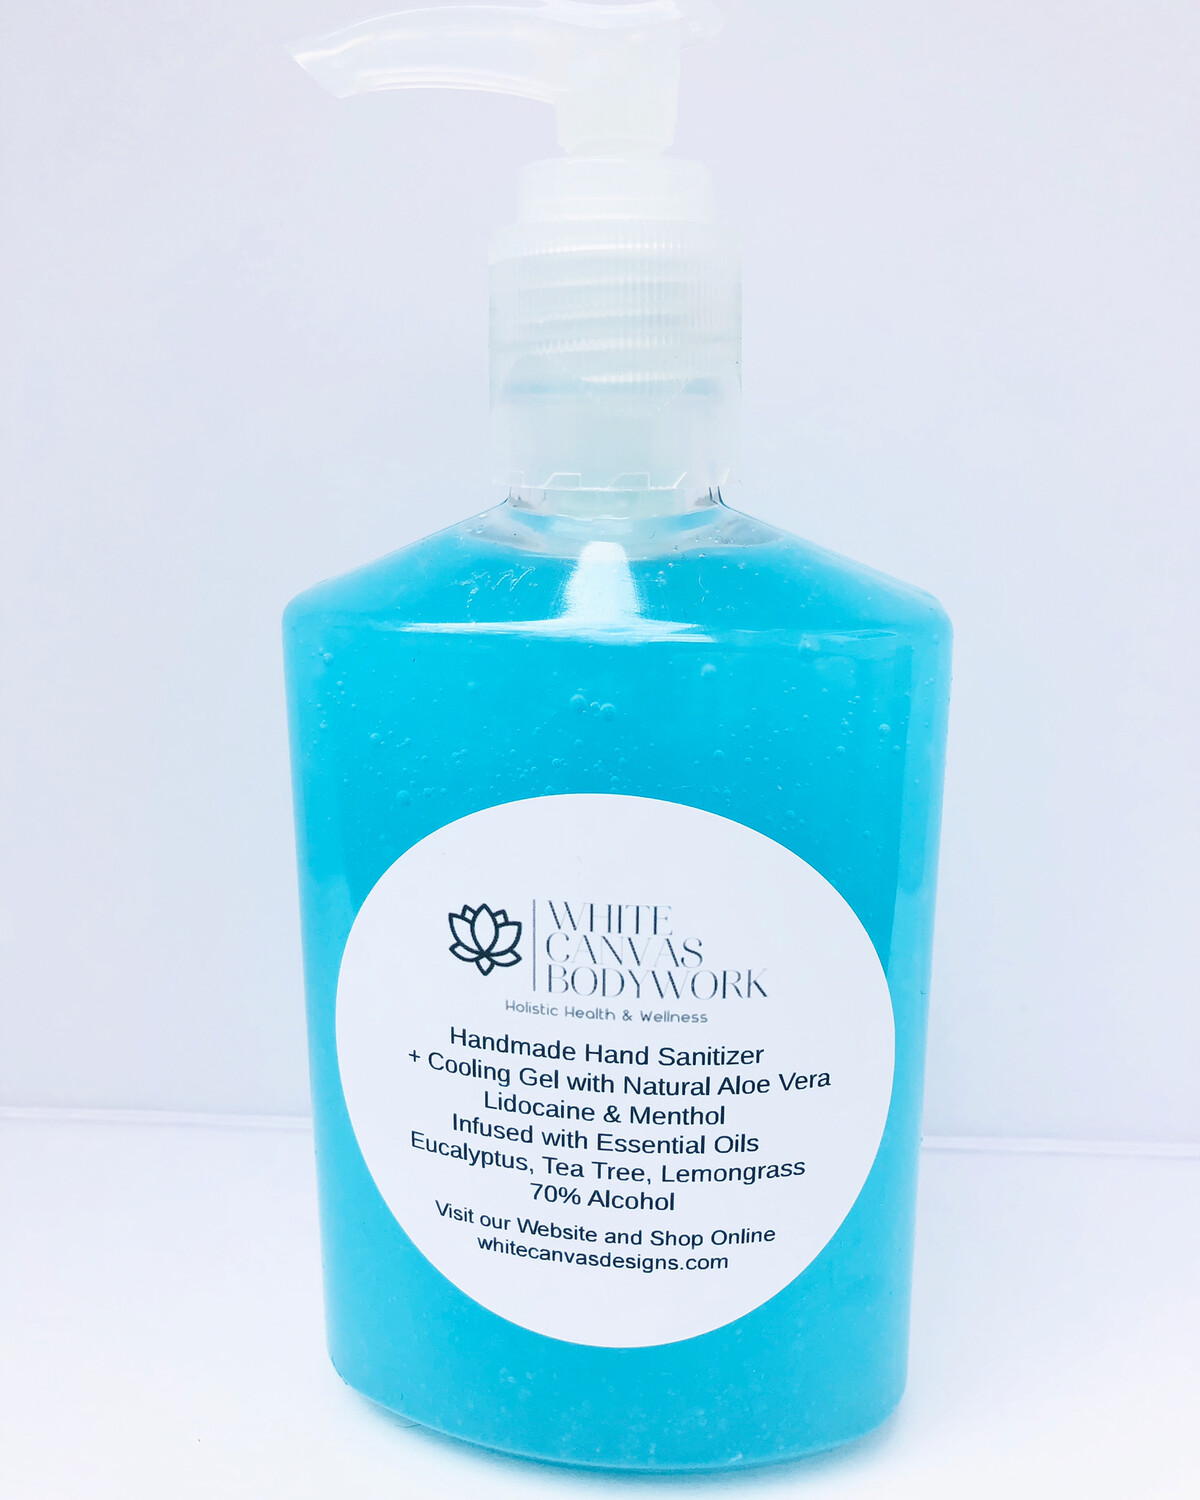 Handmade Hand Sanitizer + Cooling Gel& Menthol Infused with Essential Oils